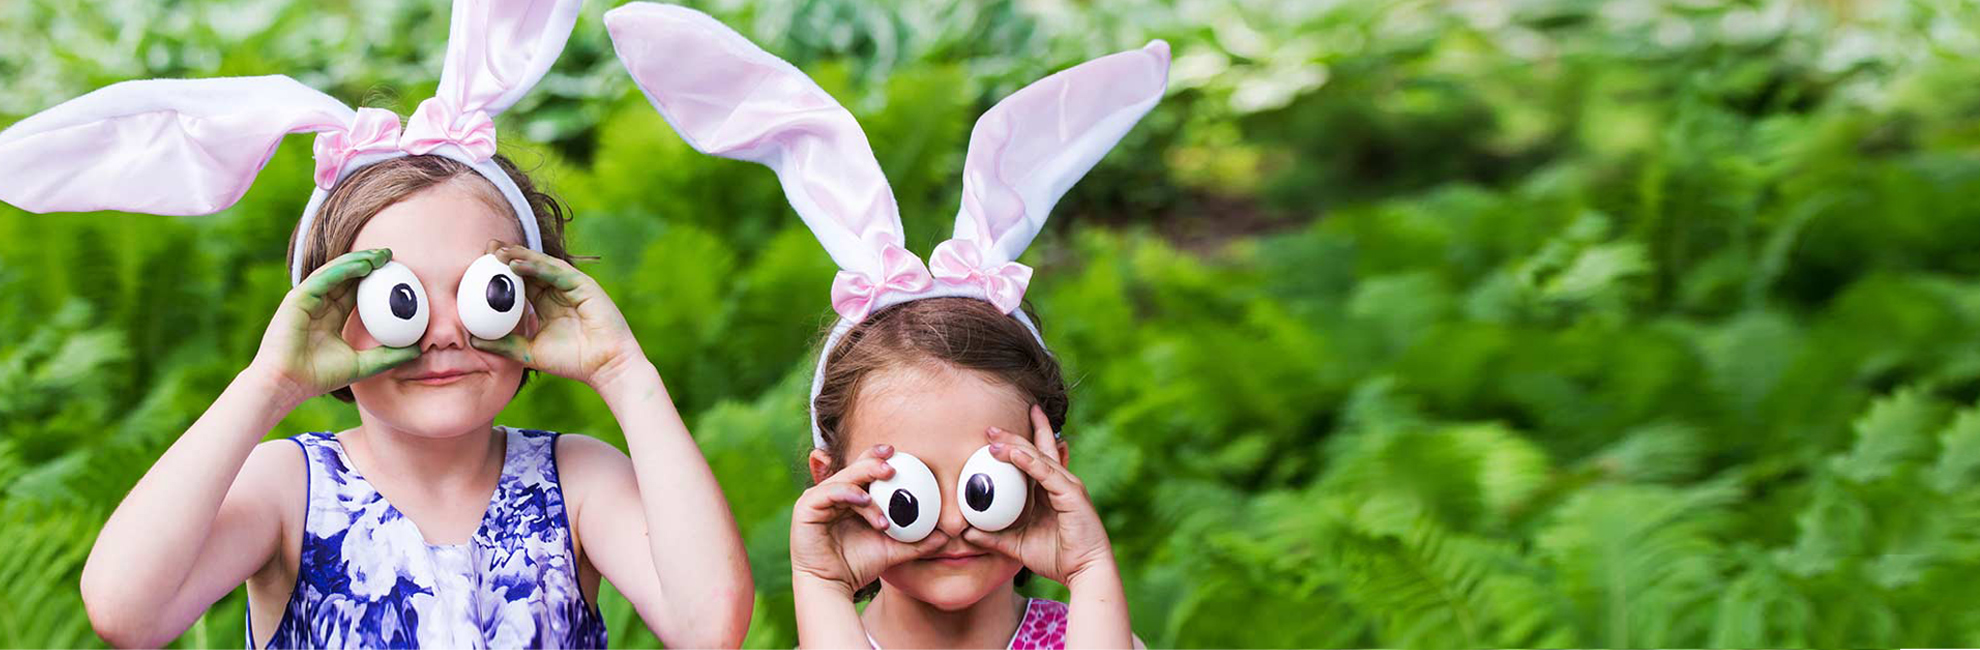 Easter Holidays & Short Breaks in the UK 2020 | Parkdean Resorts